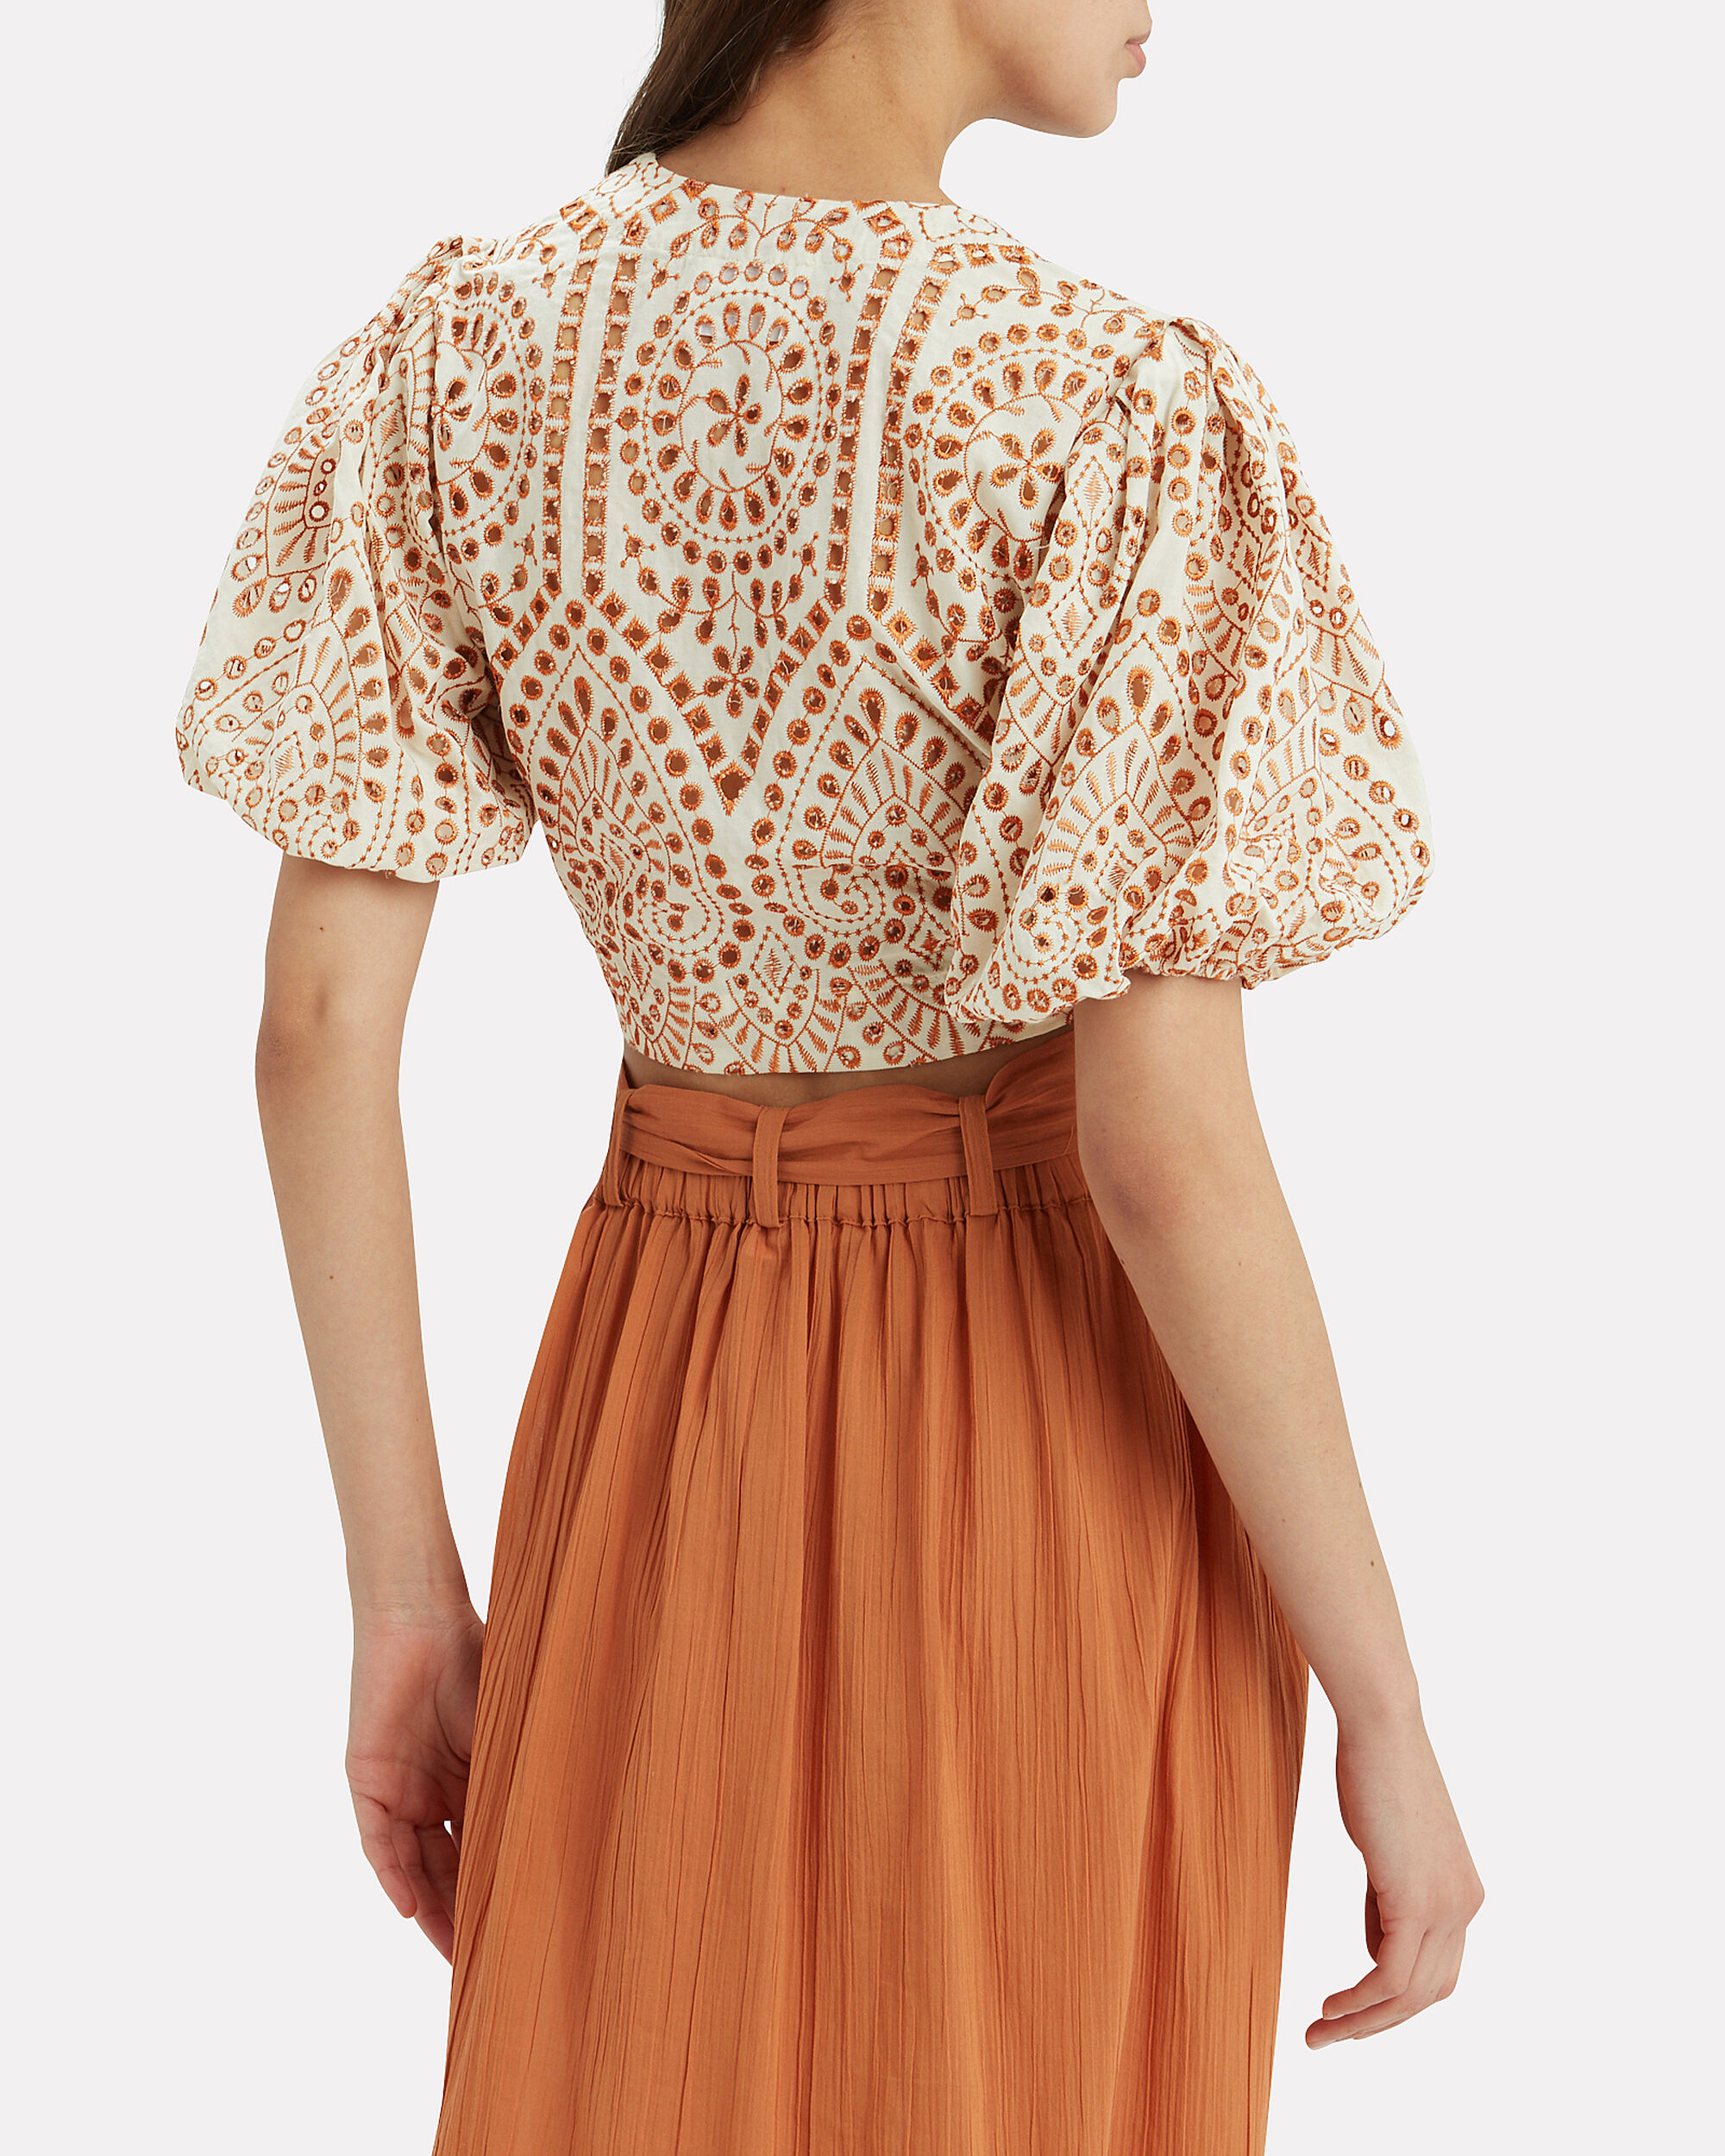 Pouf Eyelet Tie Blouse, WHITE/BROWN, hi-res